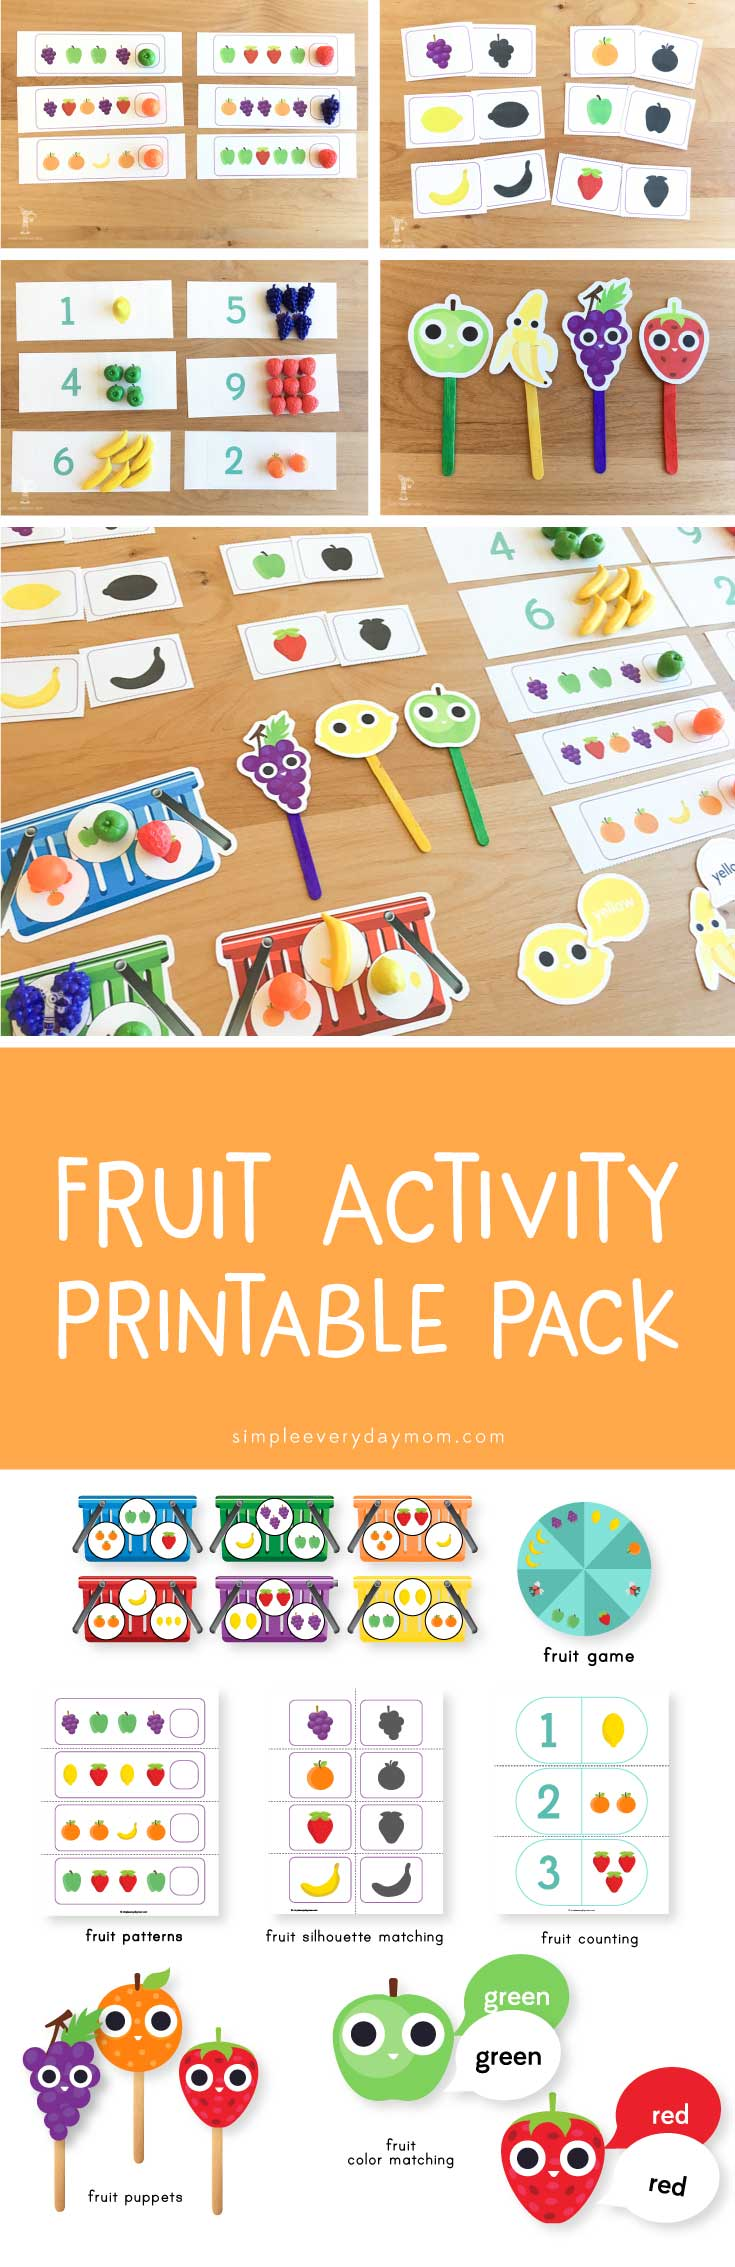 image relating to Printable Activities for Toddlers referred to as Printable Fruit Things to do For Preschoolers That Will Relaxed